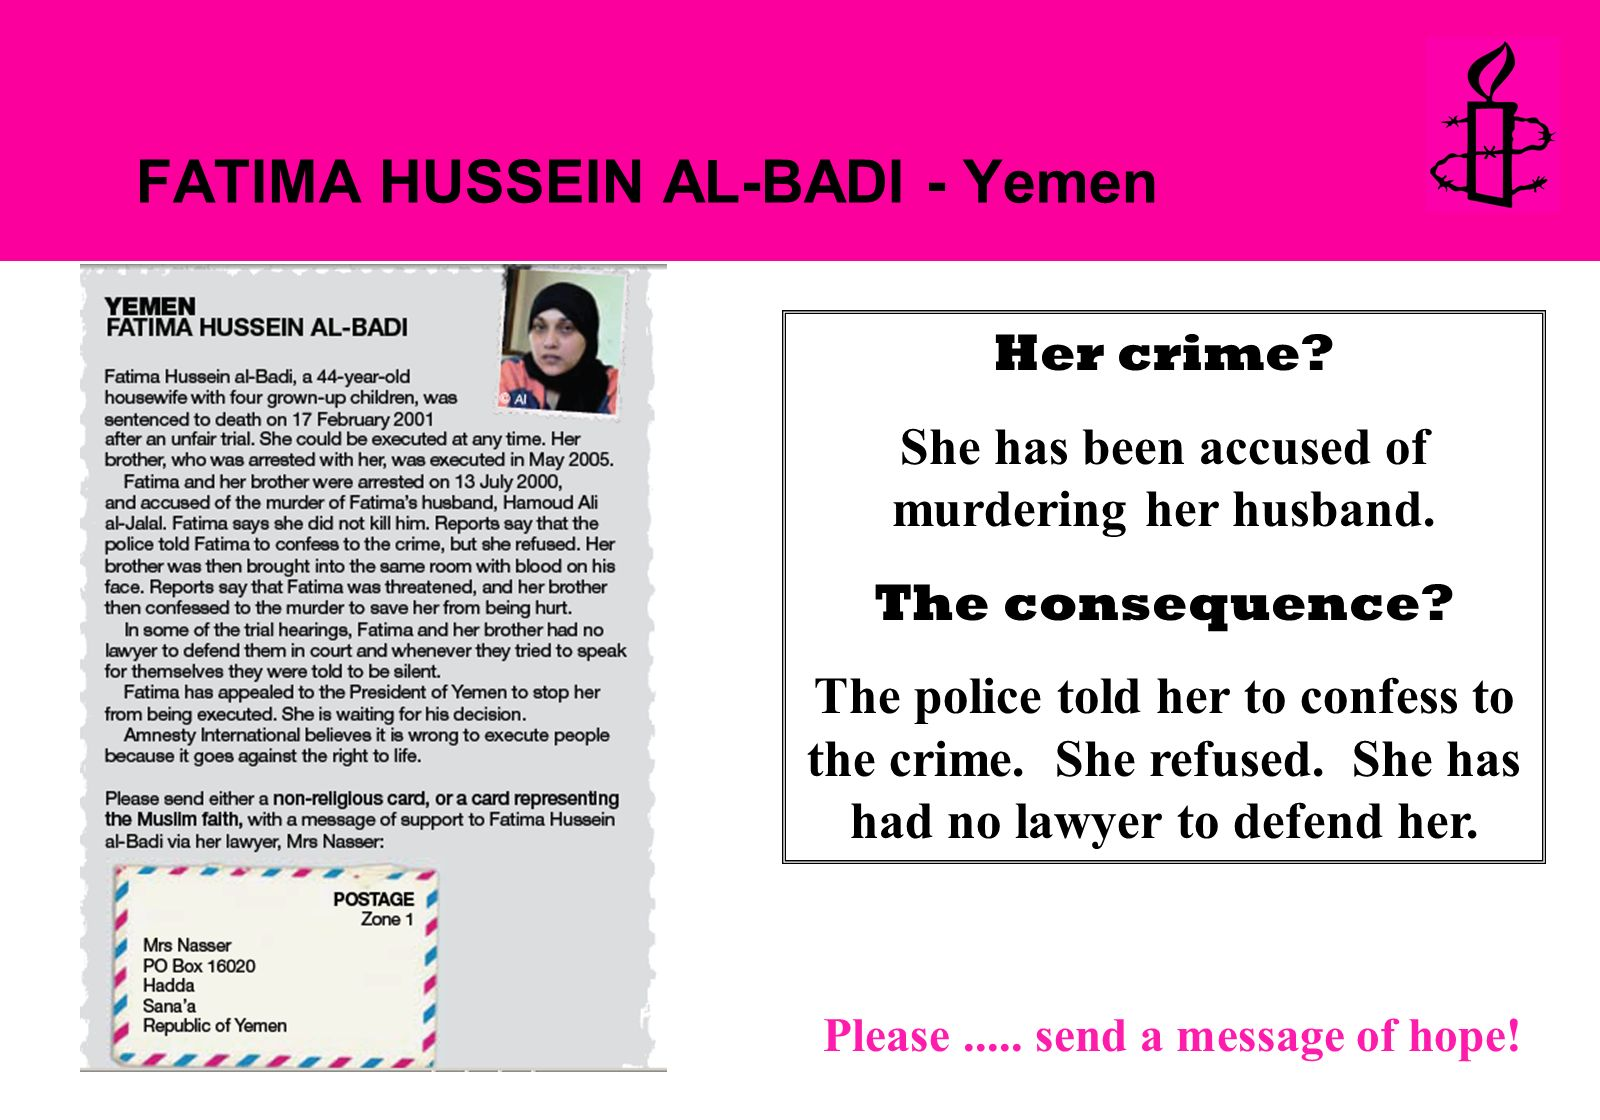 FATIMA HUSSEIN AL-BADI - Yemen Her crime. She has been accused of murdering her husband.